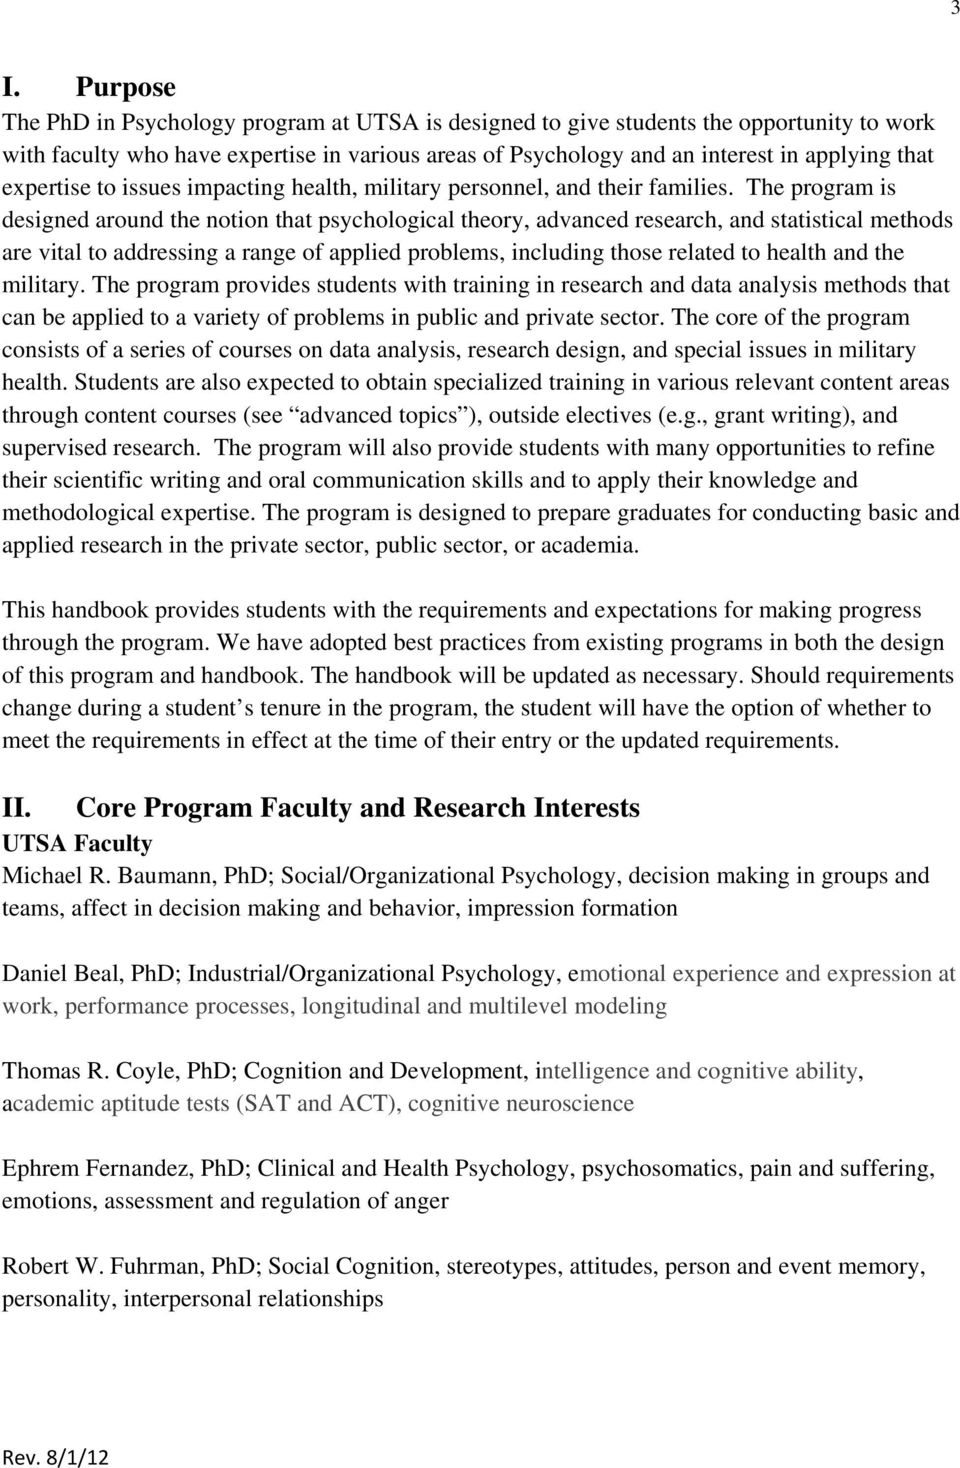 The program is designed around the notion that psychological theory, advanced research, and statistical methods are vital to addressing a range of applied problems, including those related to health